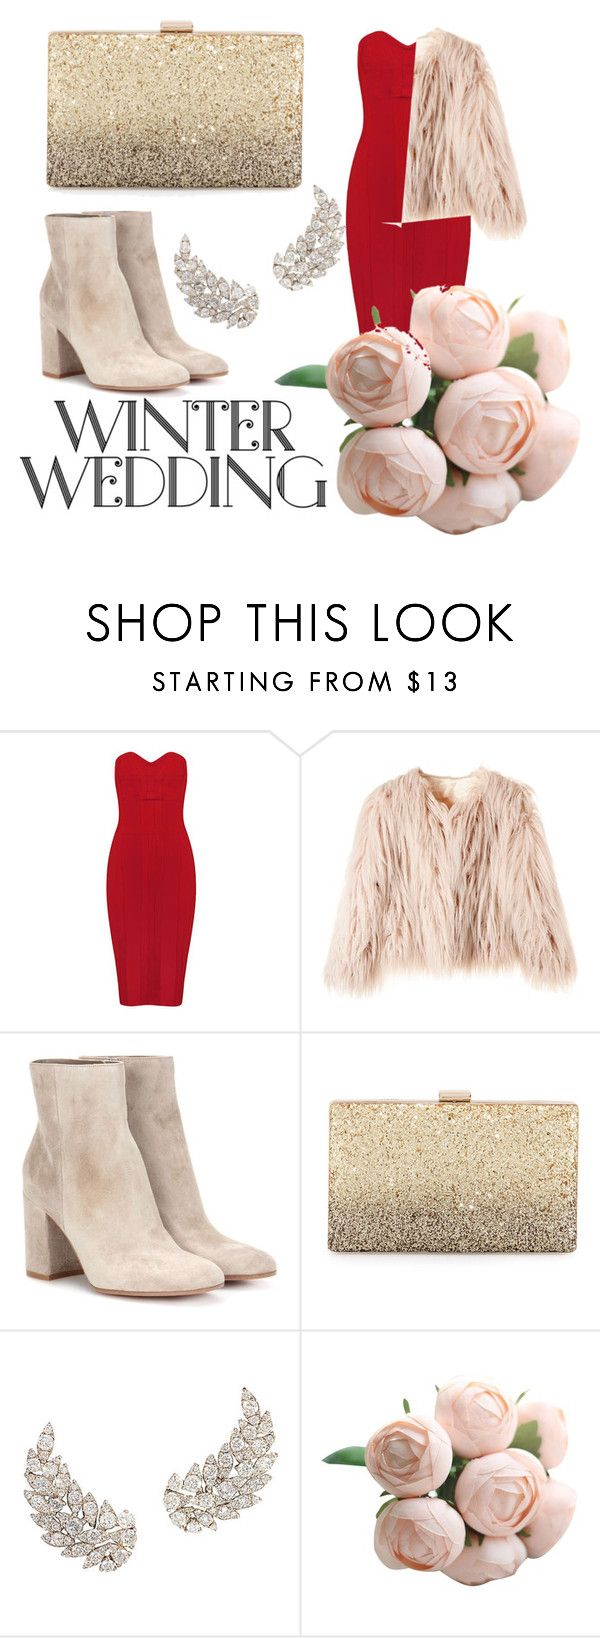 """""""winter wedding"""" by mariabutnarica ❤ liked on Polyvore featuring Gianvito Rossi and Neiman Marcus"""